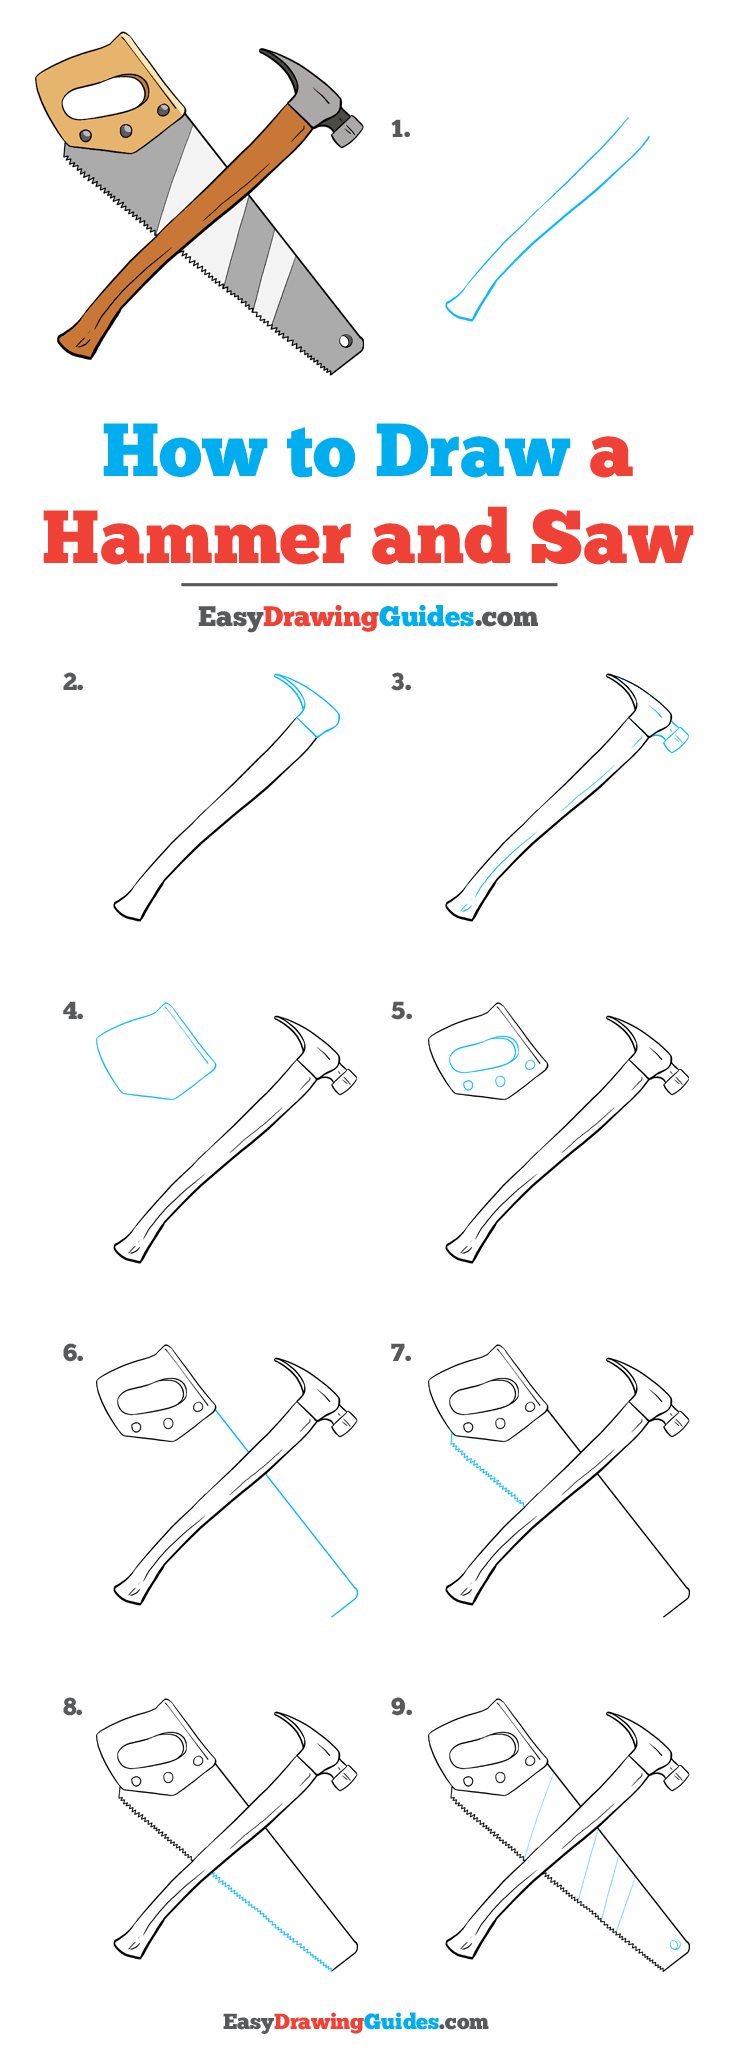 How to Draw Hammer and Saw